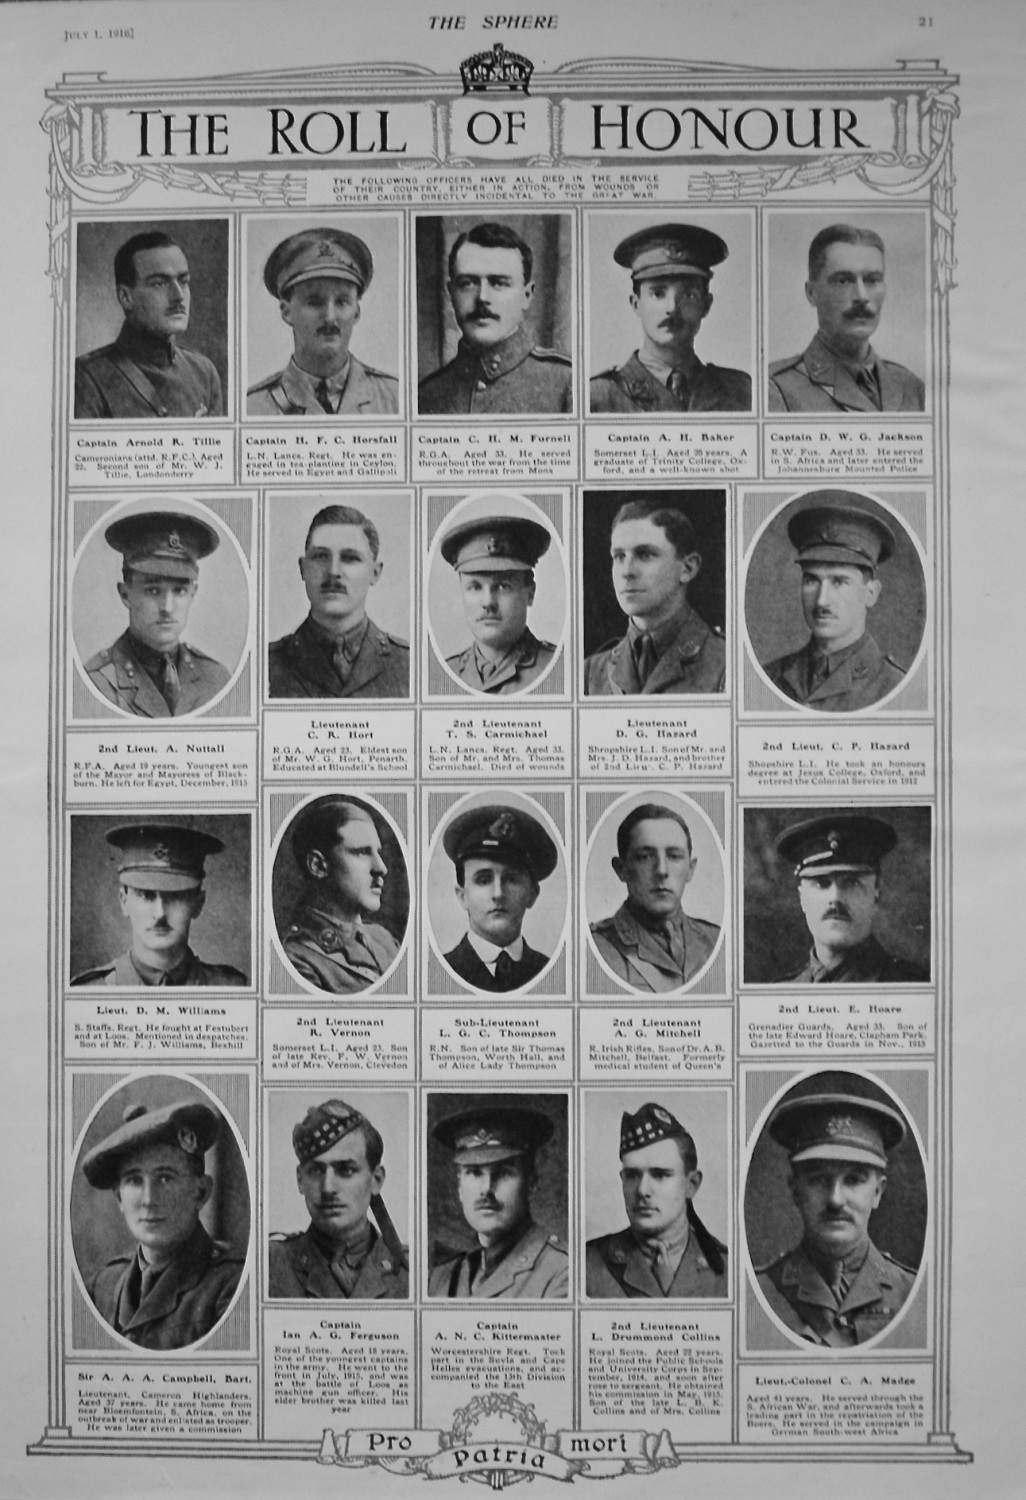 The Roll of Honour. July 1st. 1916.